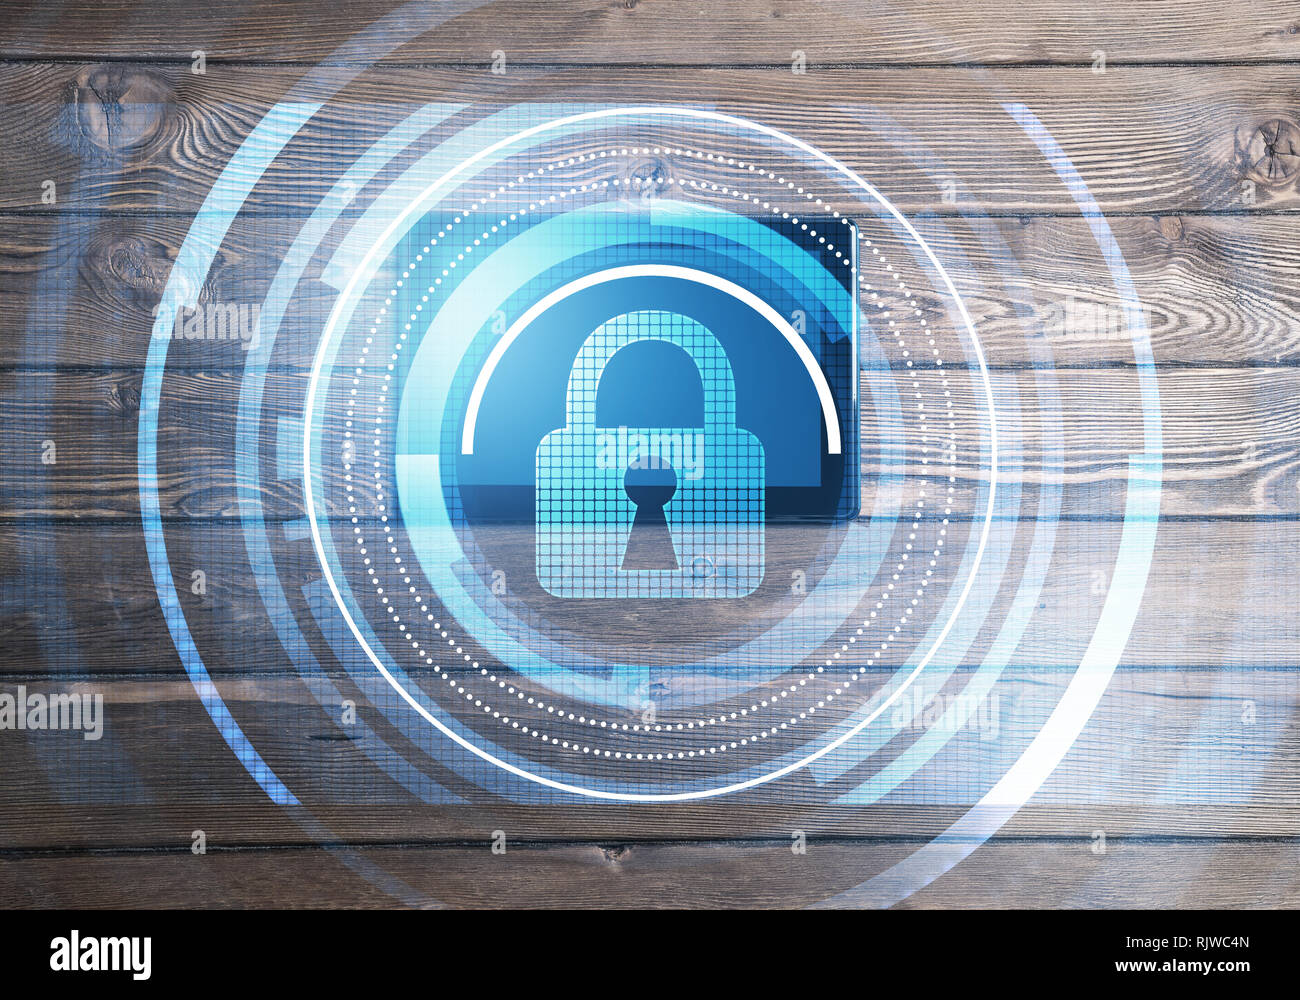 Concept of computer access with media lock icon on tablet screen - Stock Image